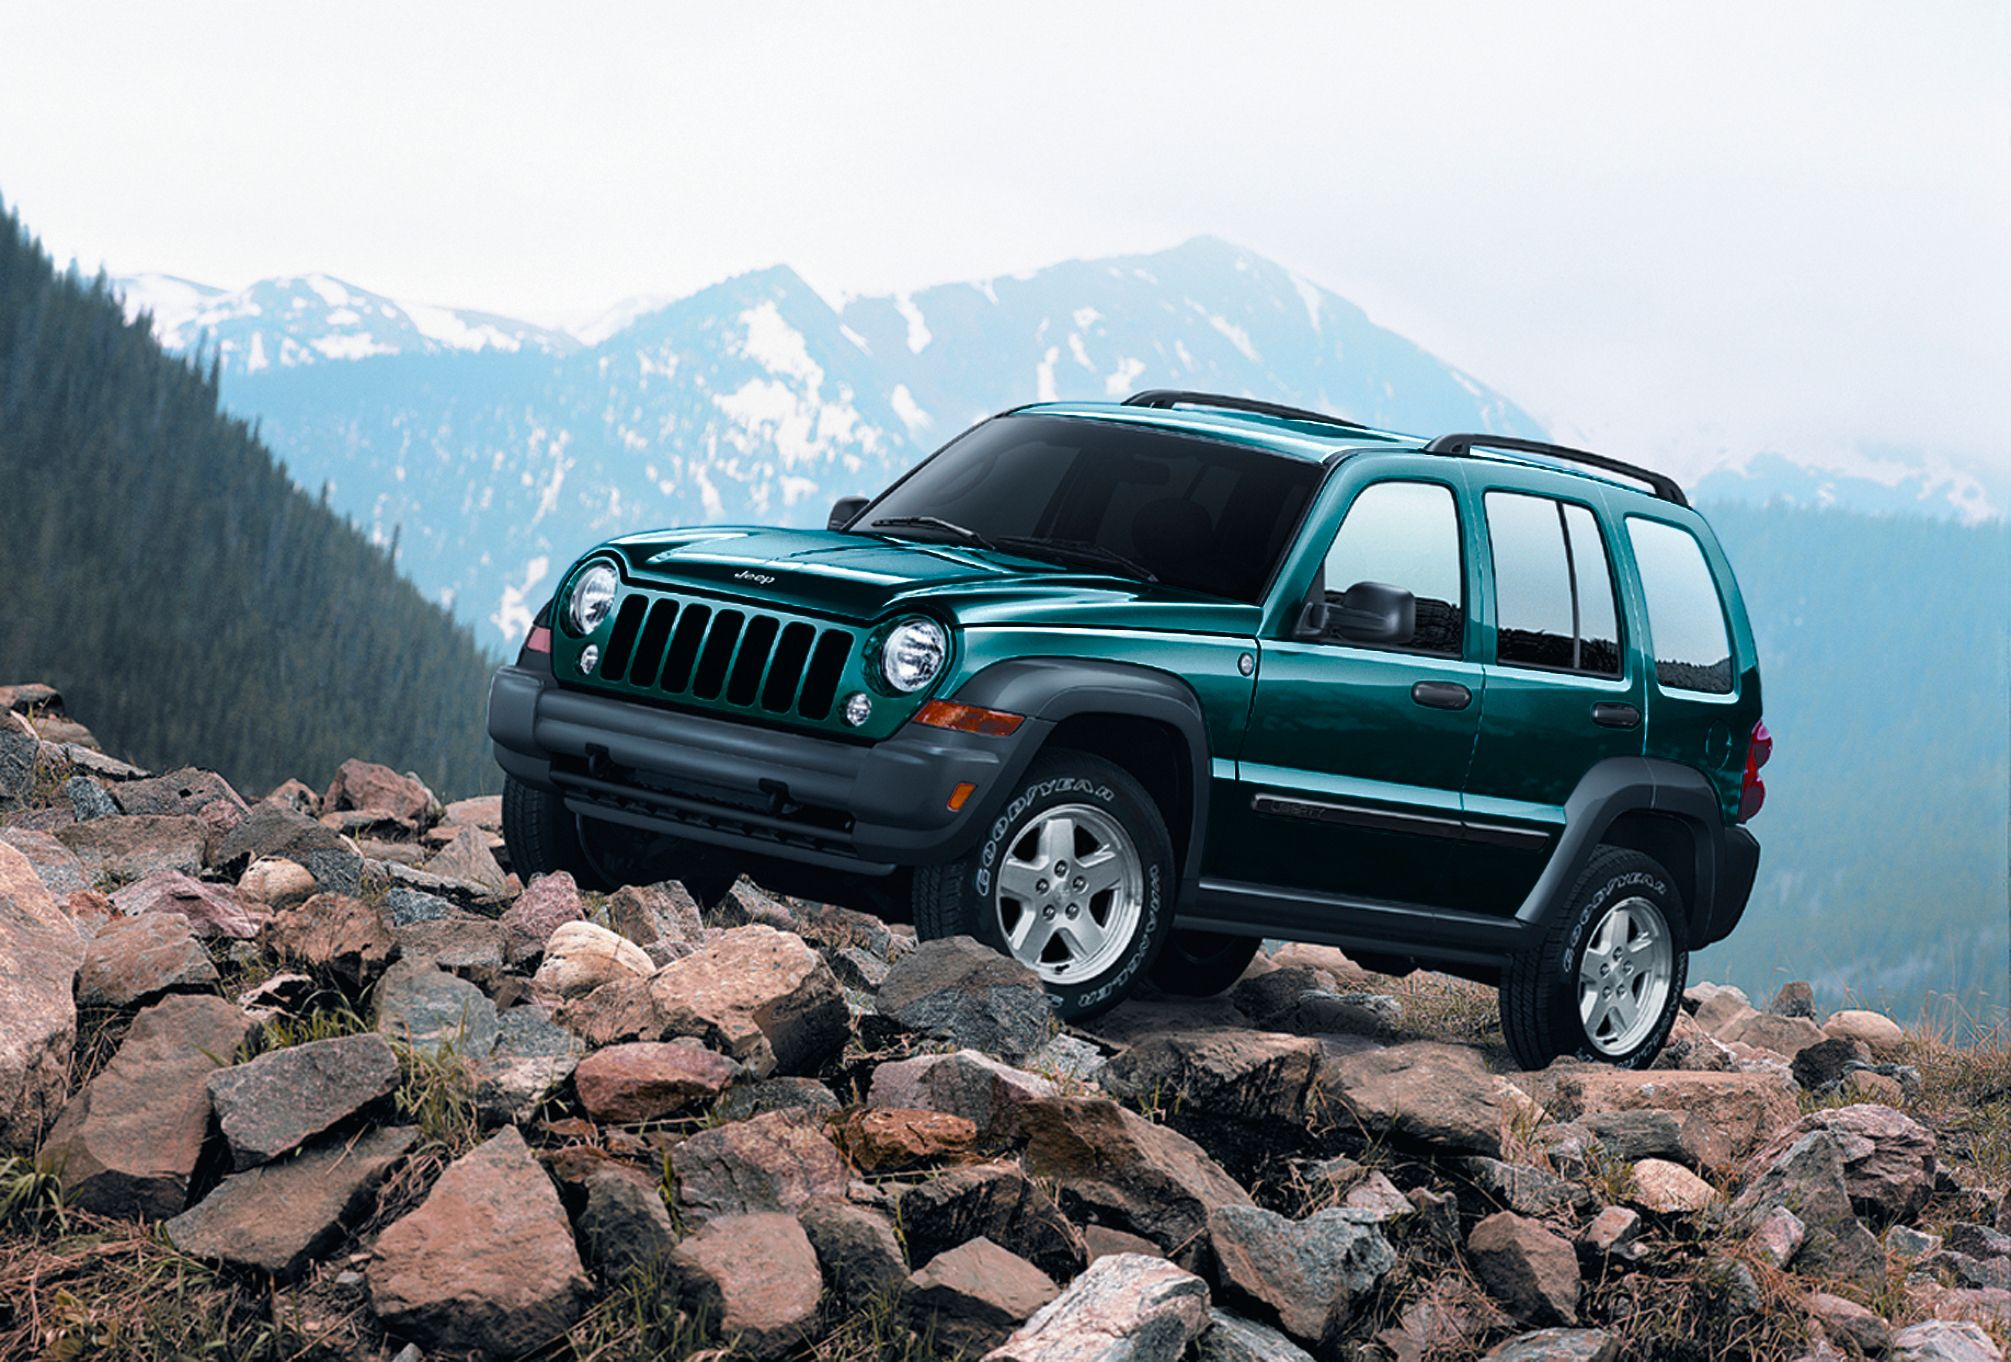 2006 Jeep Liberty Limited 4x4 Crd New Suv Review Wrangler Fuel Filter